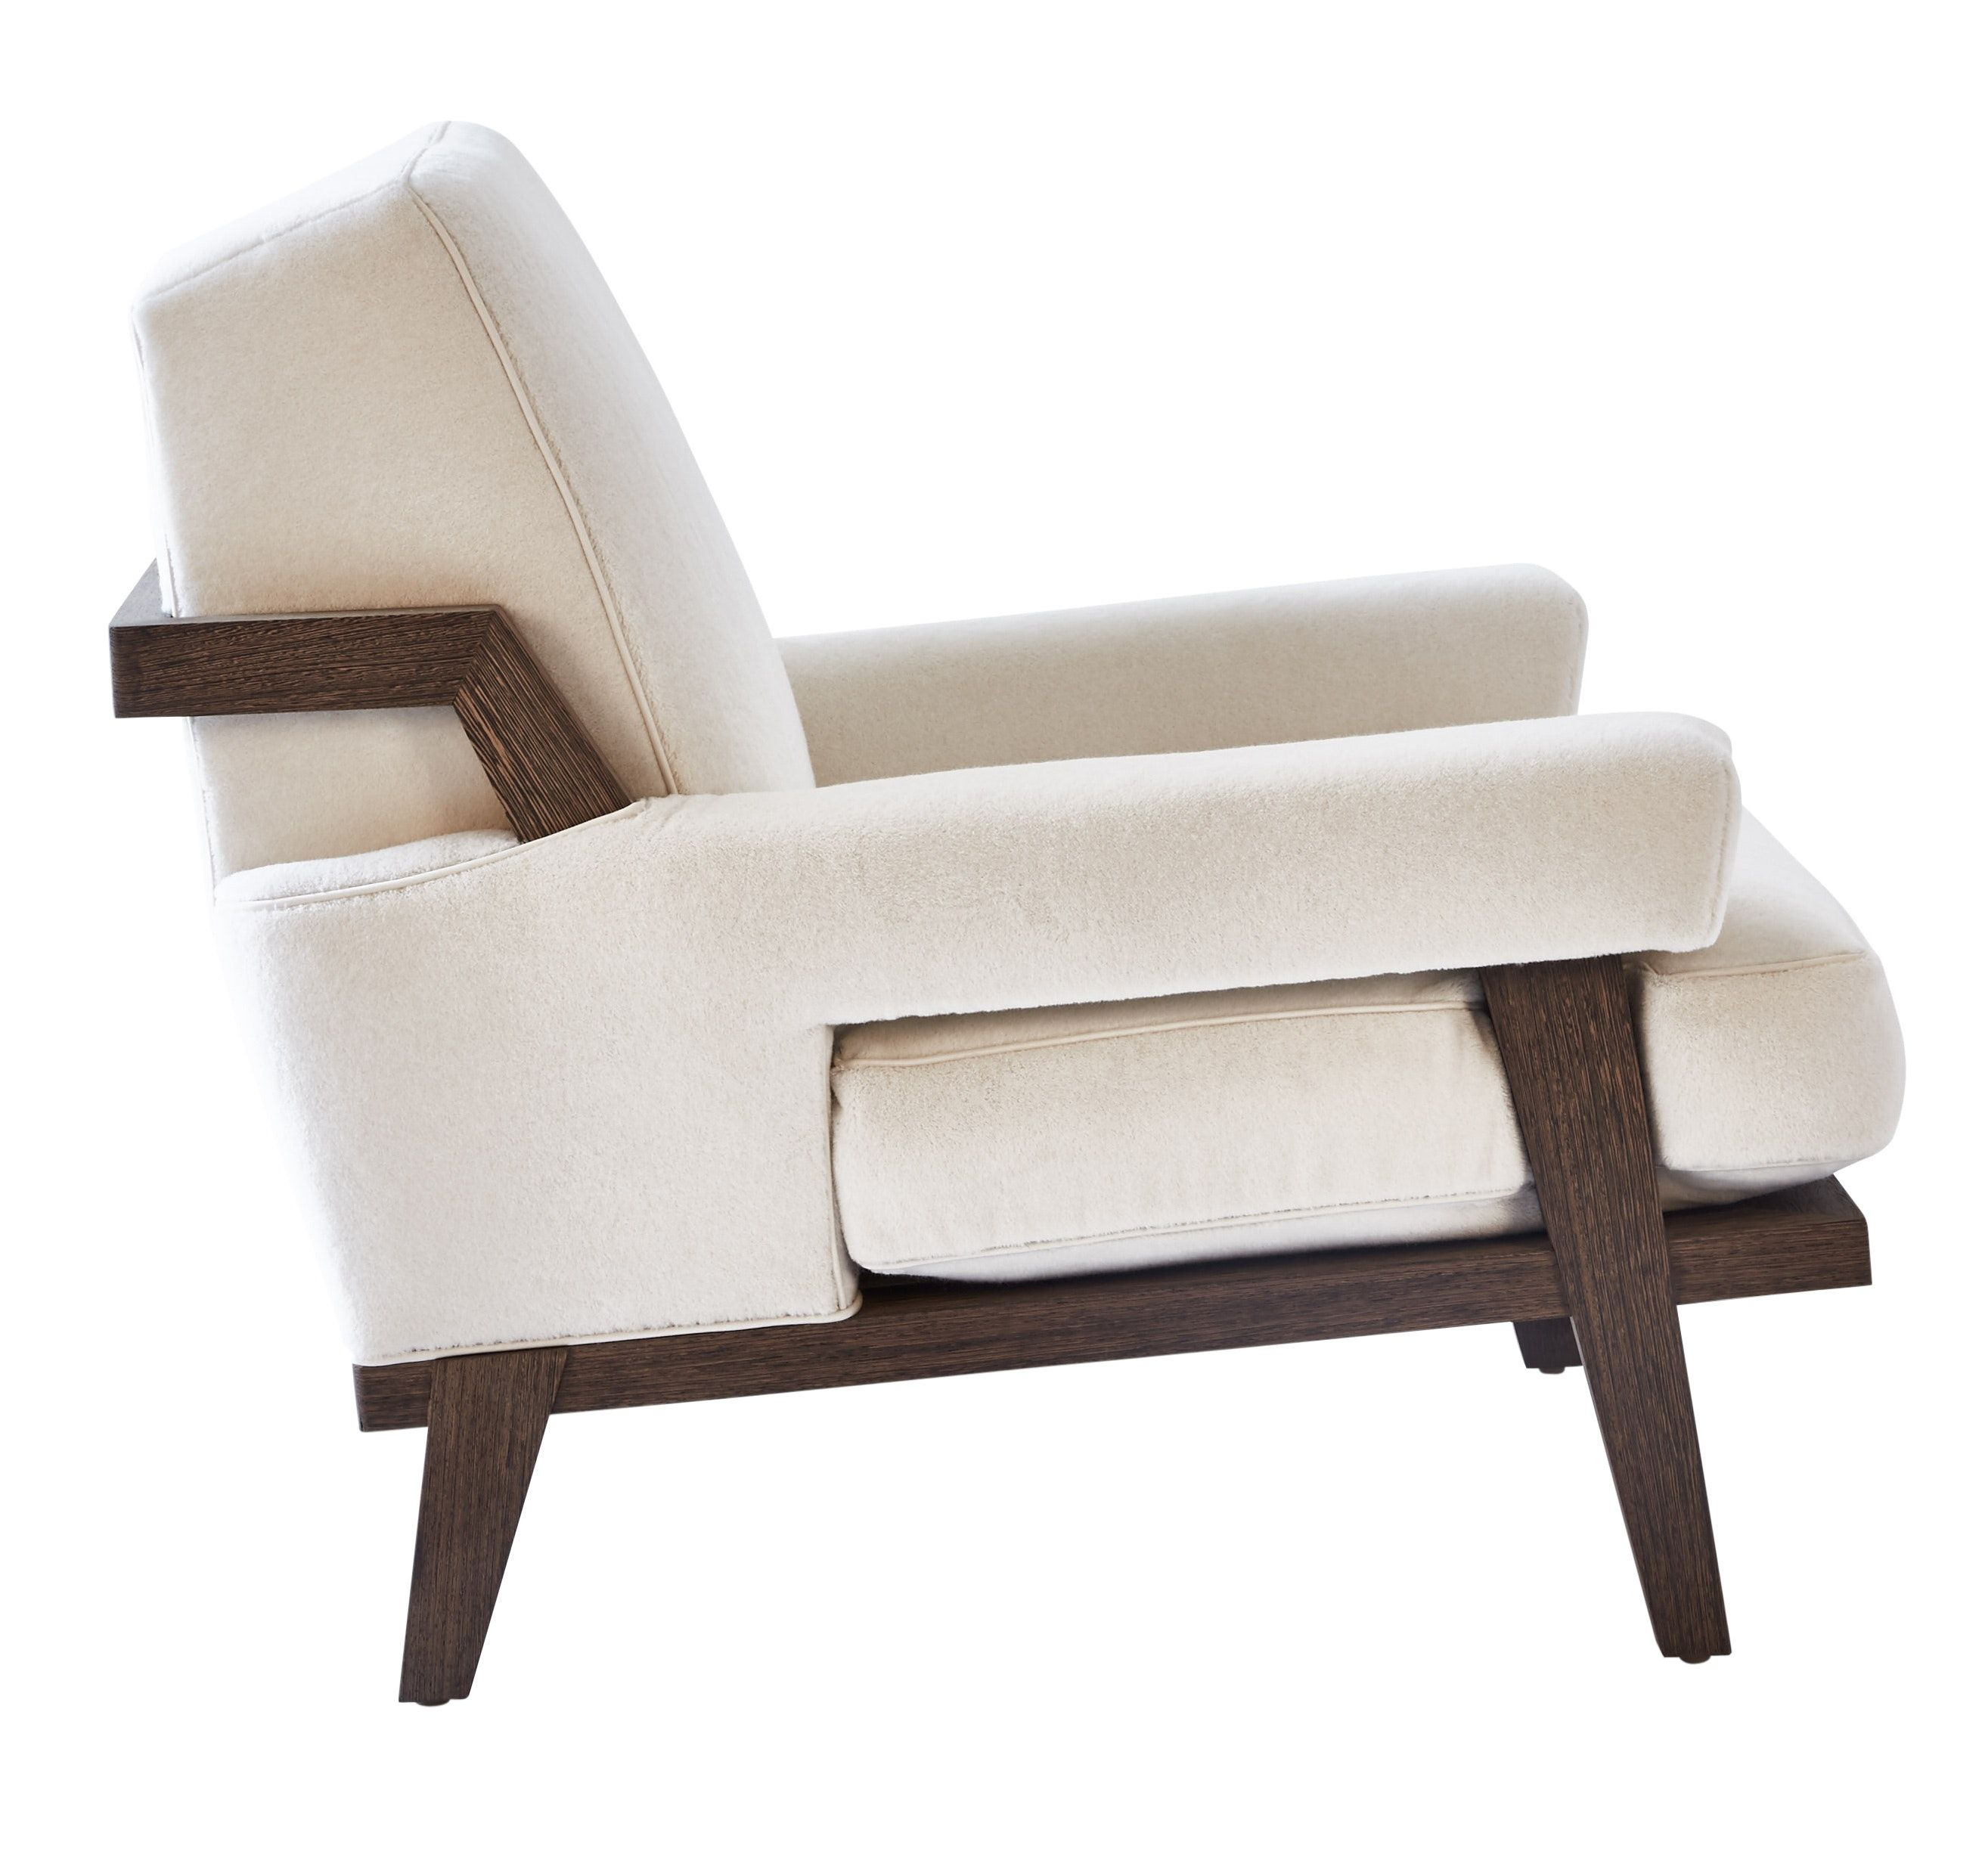 Buy CIGAR LOUNGE CHAIR By Kimberly Denman   Made To Order Designer Furniture  From